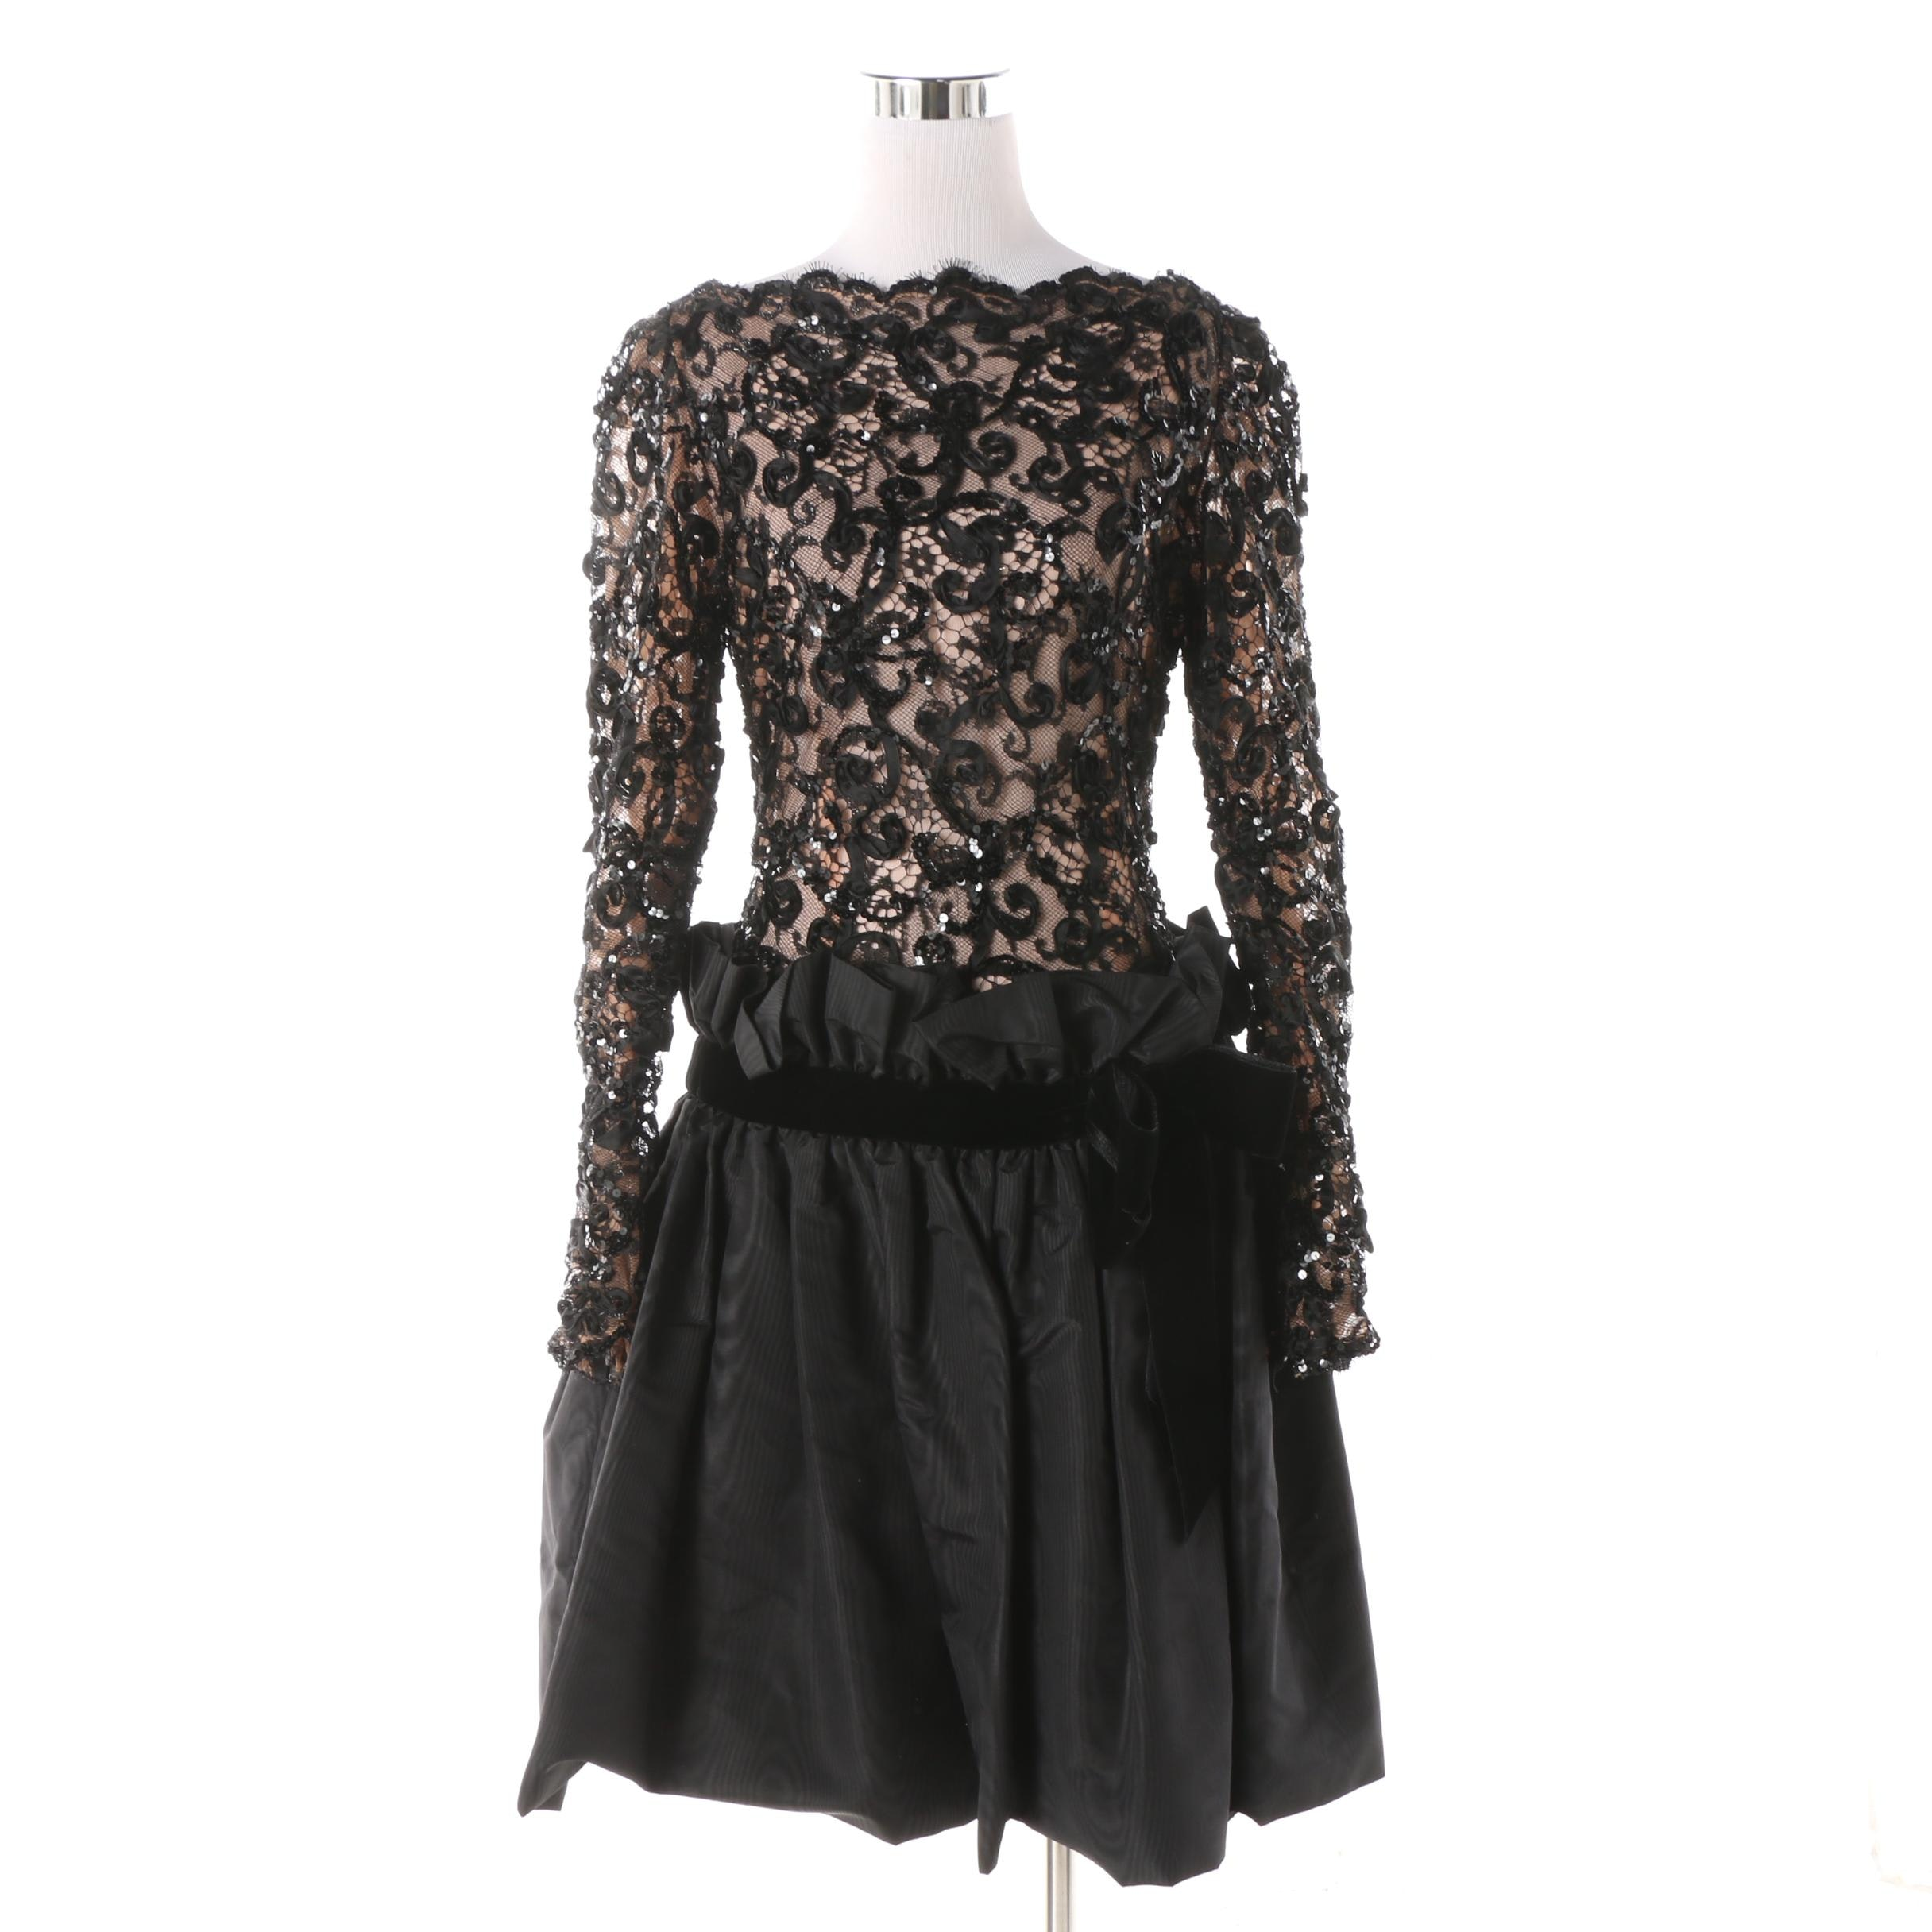 1980s Bob Mackie Black Lace and Sequin Cocktail Dress with Velvet Bow Detail